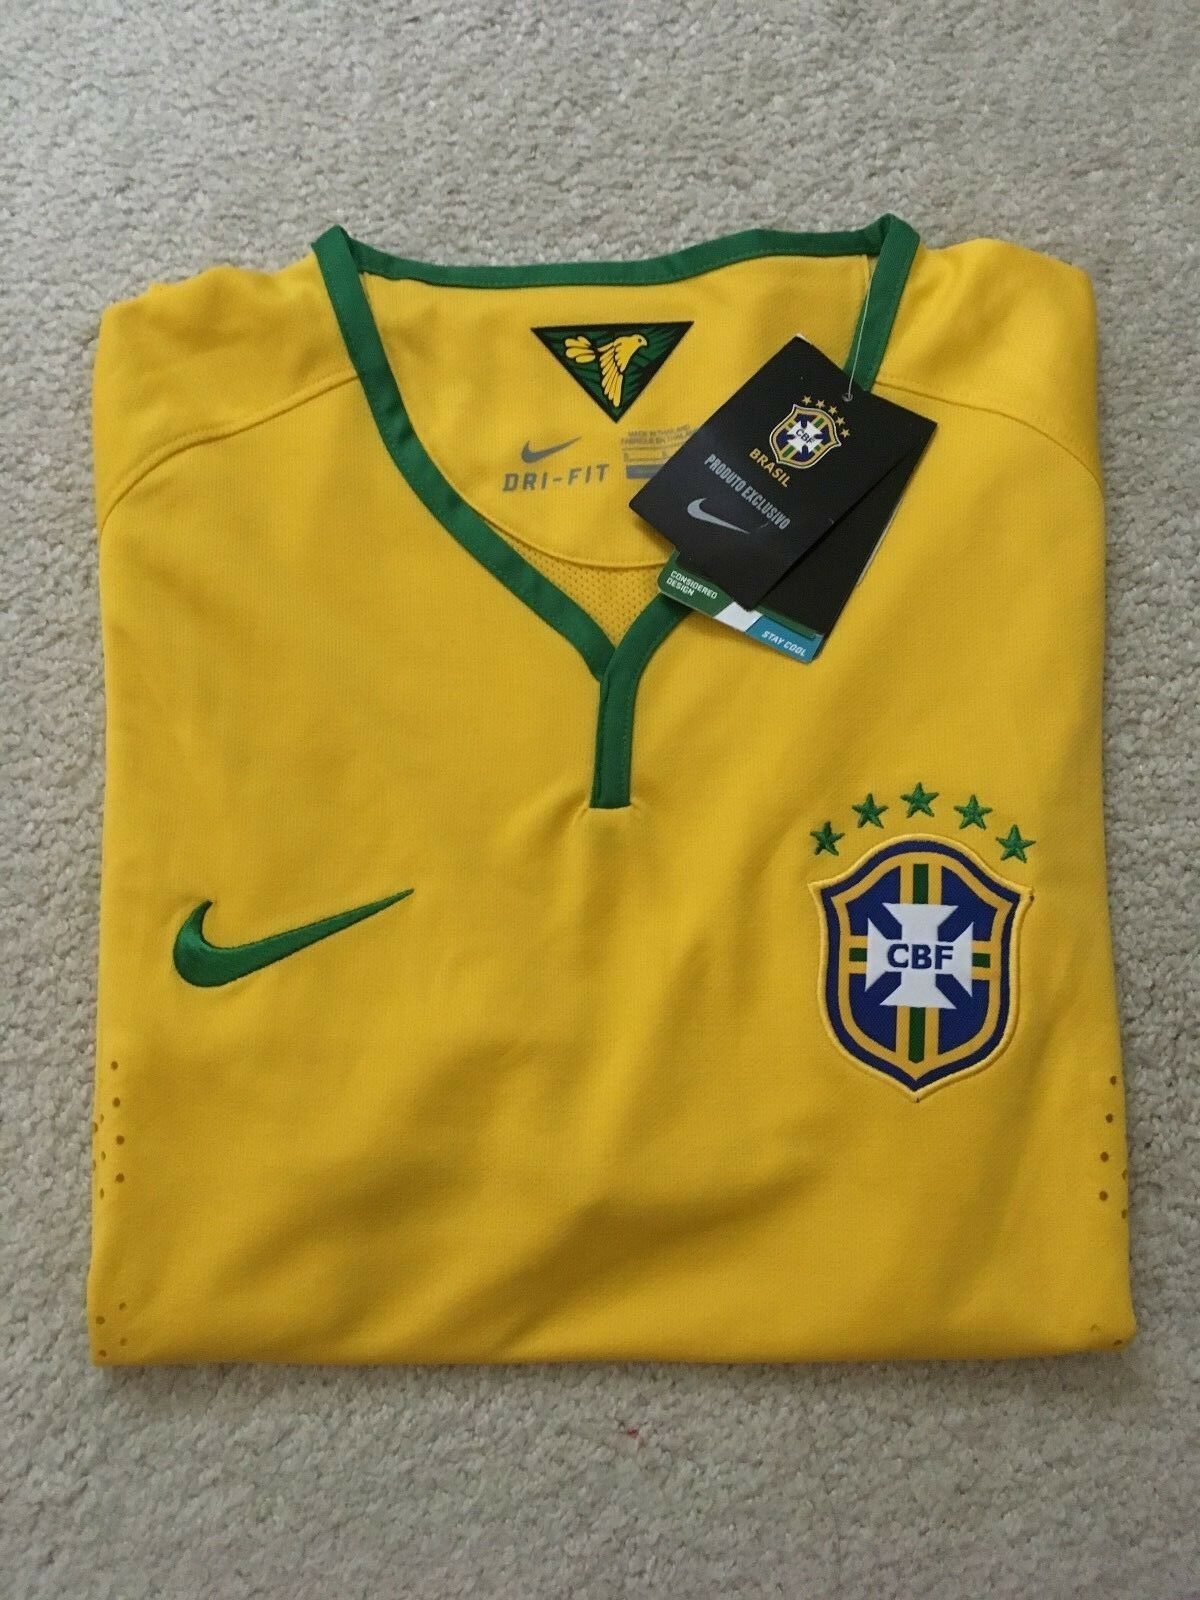 2014 WORLD CUP NIKE BRAZIL HOME JERSEY